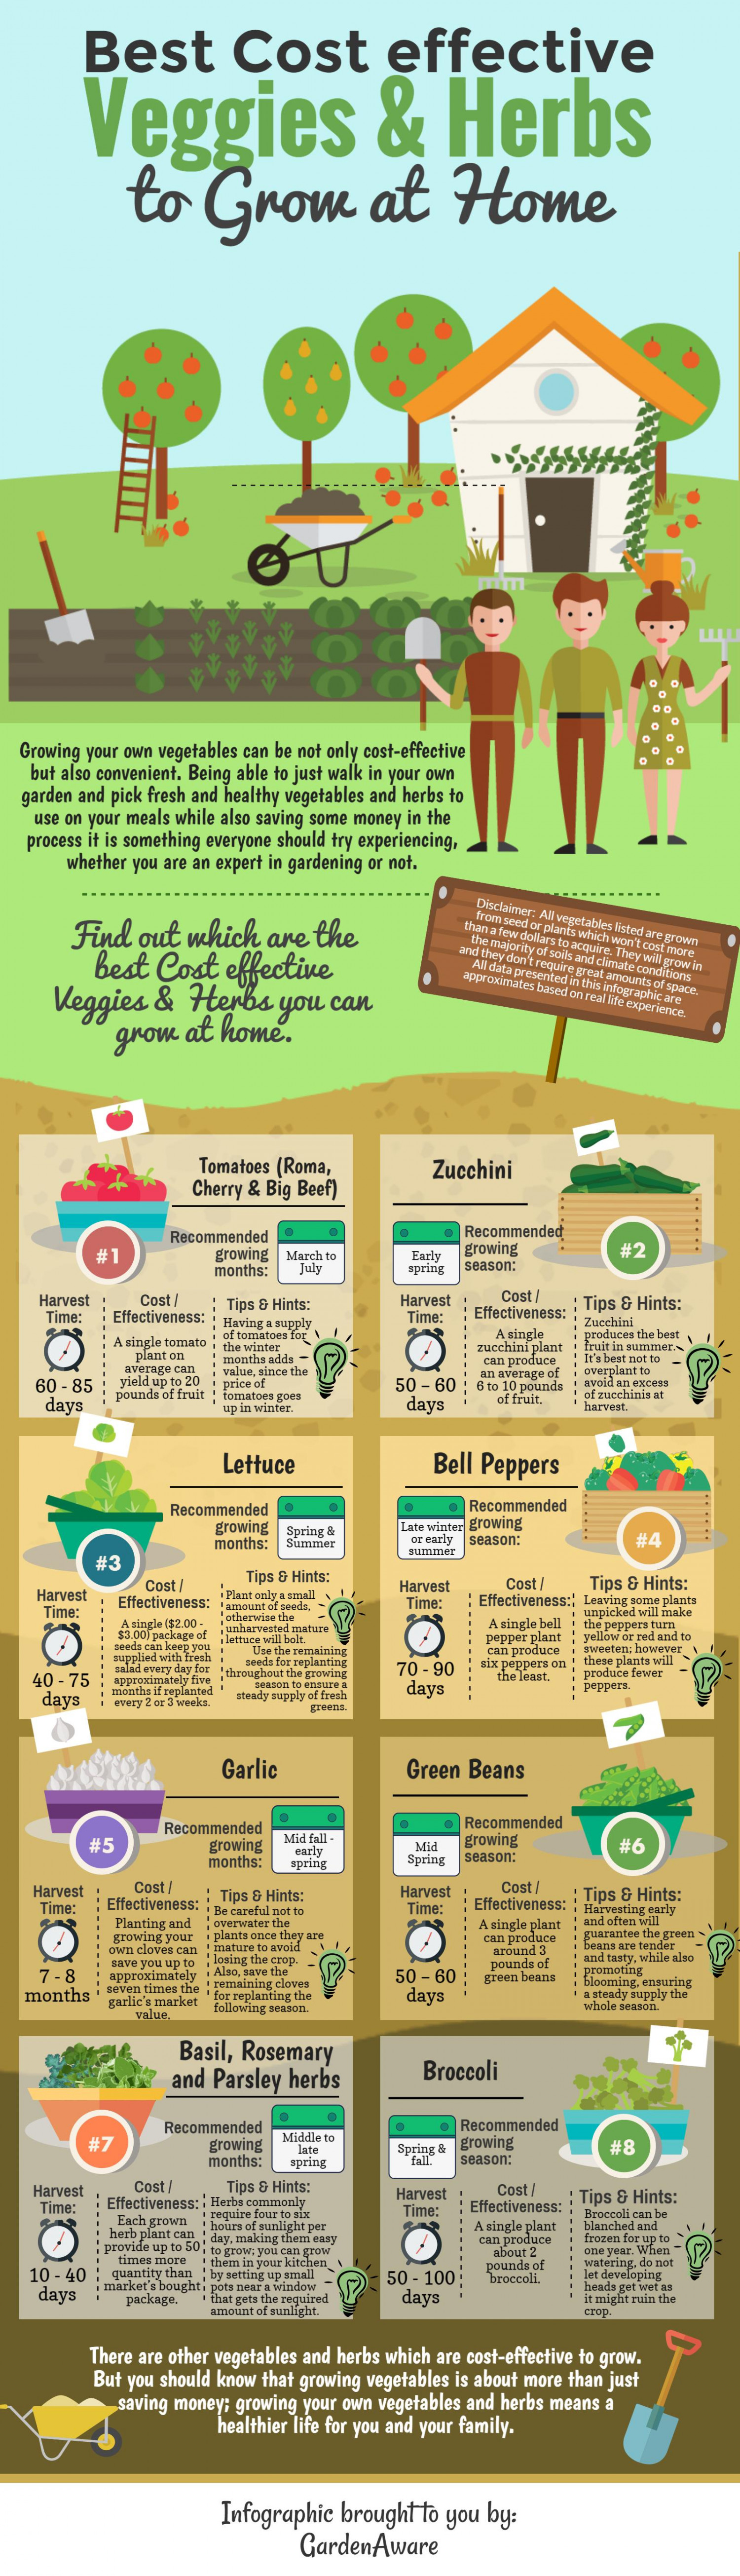 Best cost effective veggies and herbs to grow at home Infographic